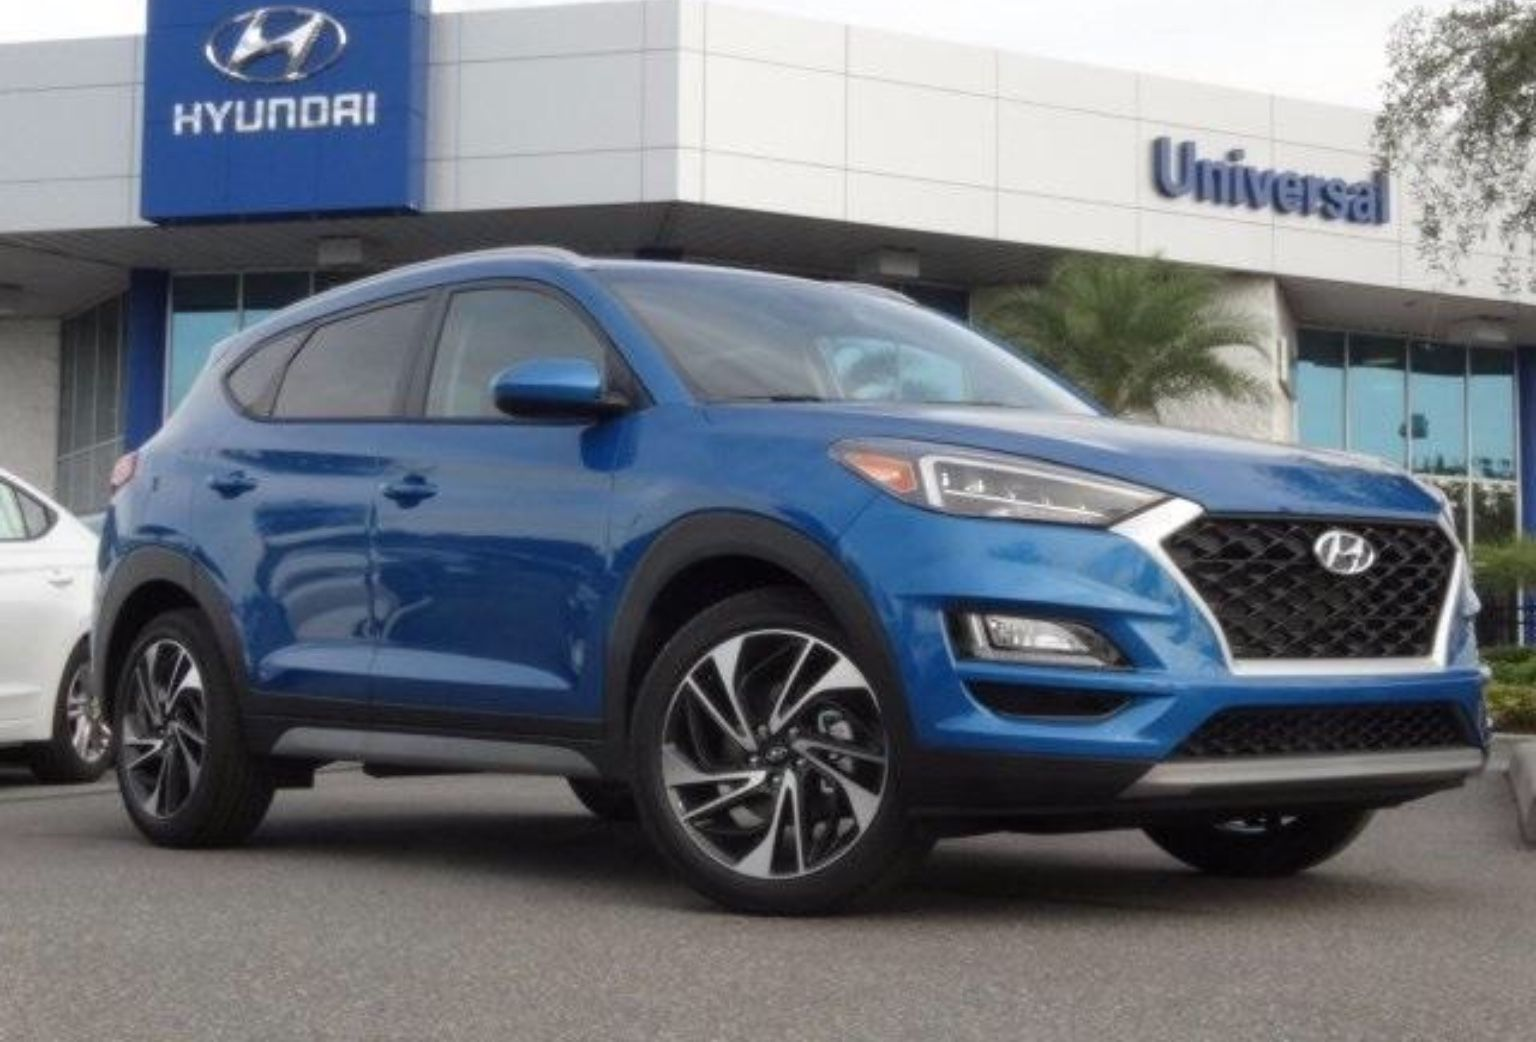 The allnew beautiful 2019 blue Hyundai Tucson Sport